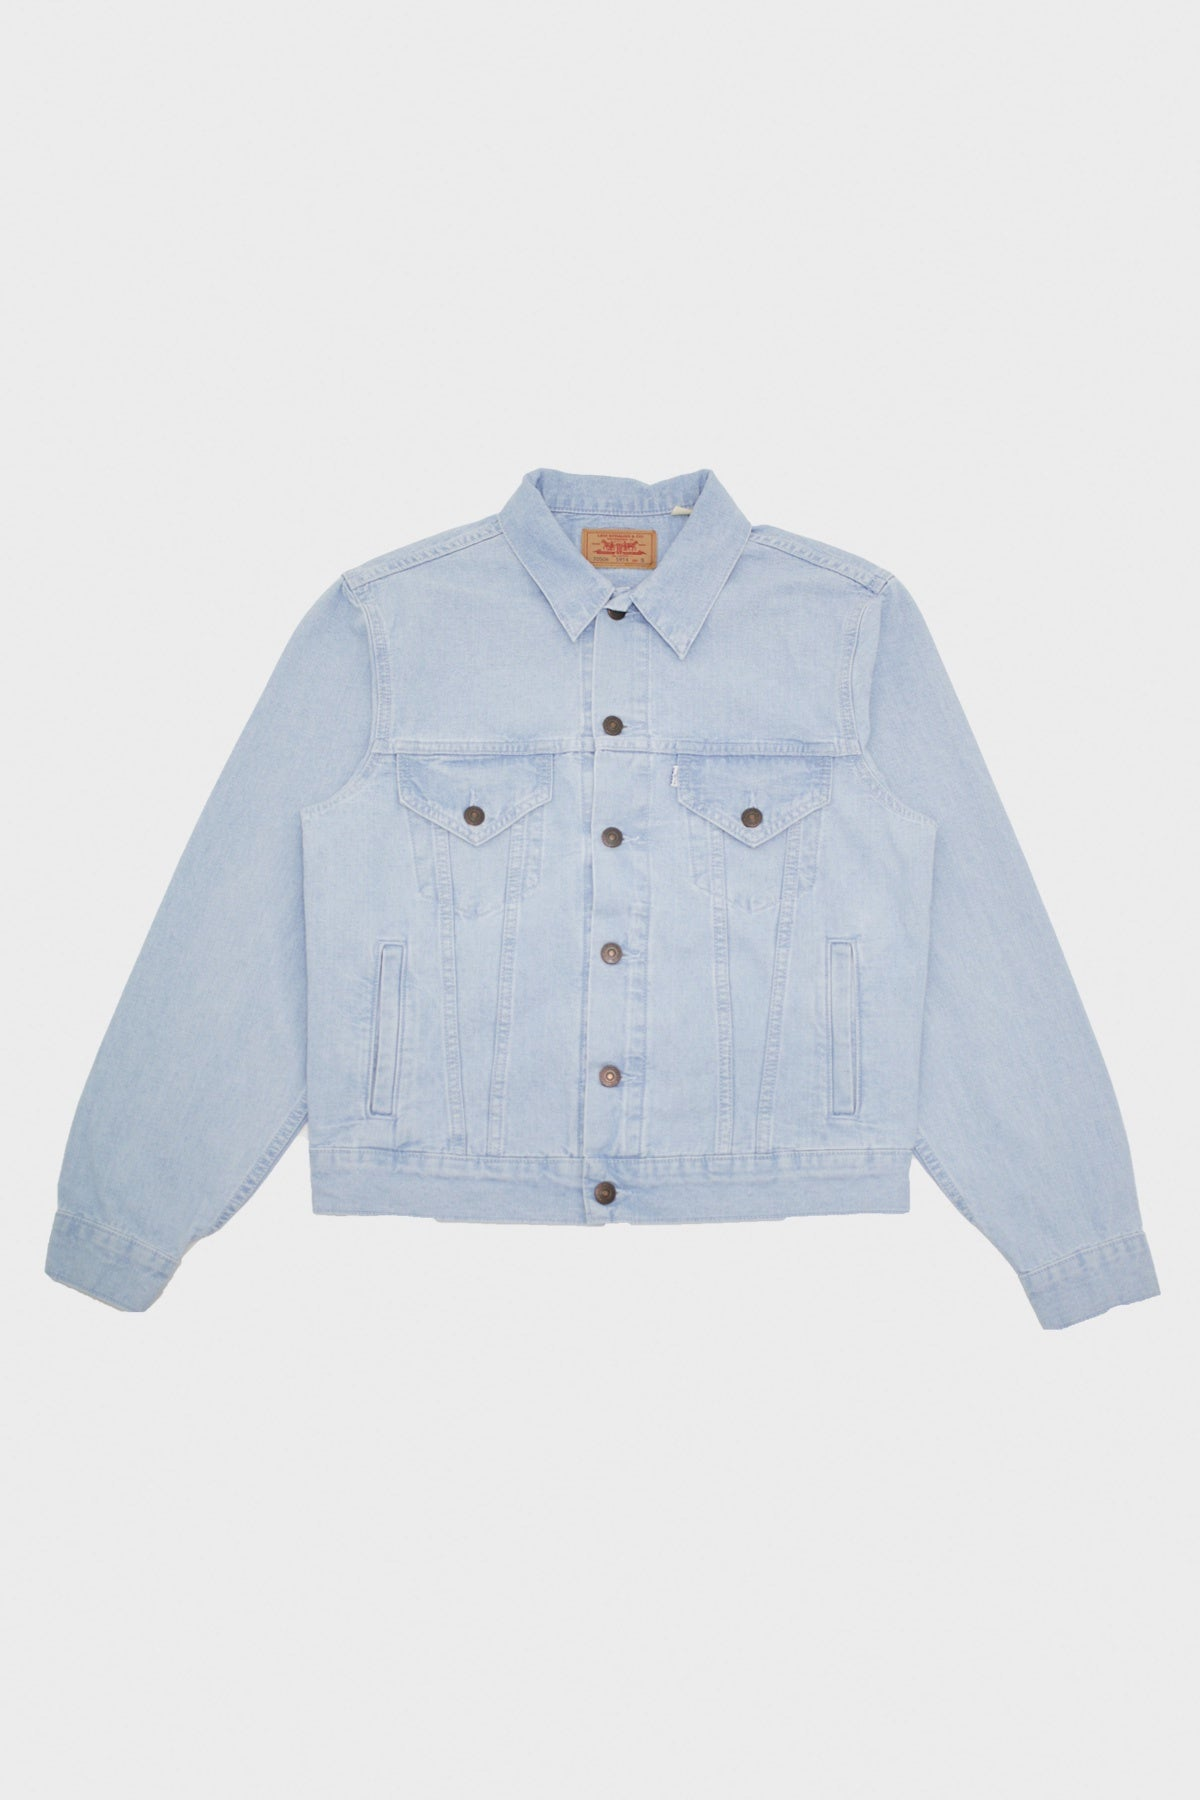 Levi's Vintage Clothing - 80s 4 Pocket Trucker - Dust Blue - Canoe Club